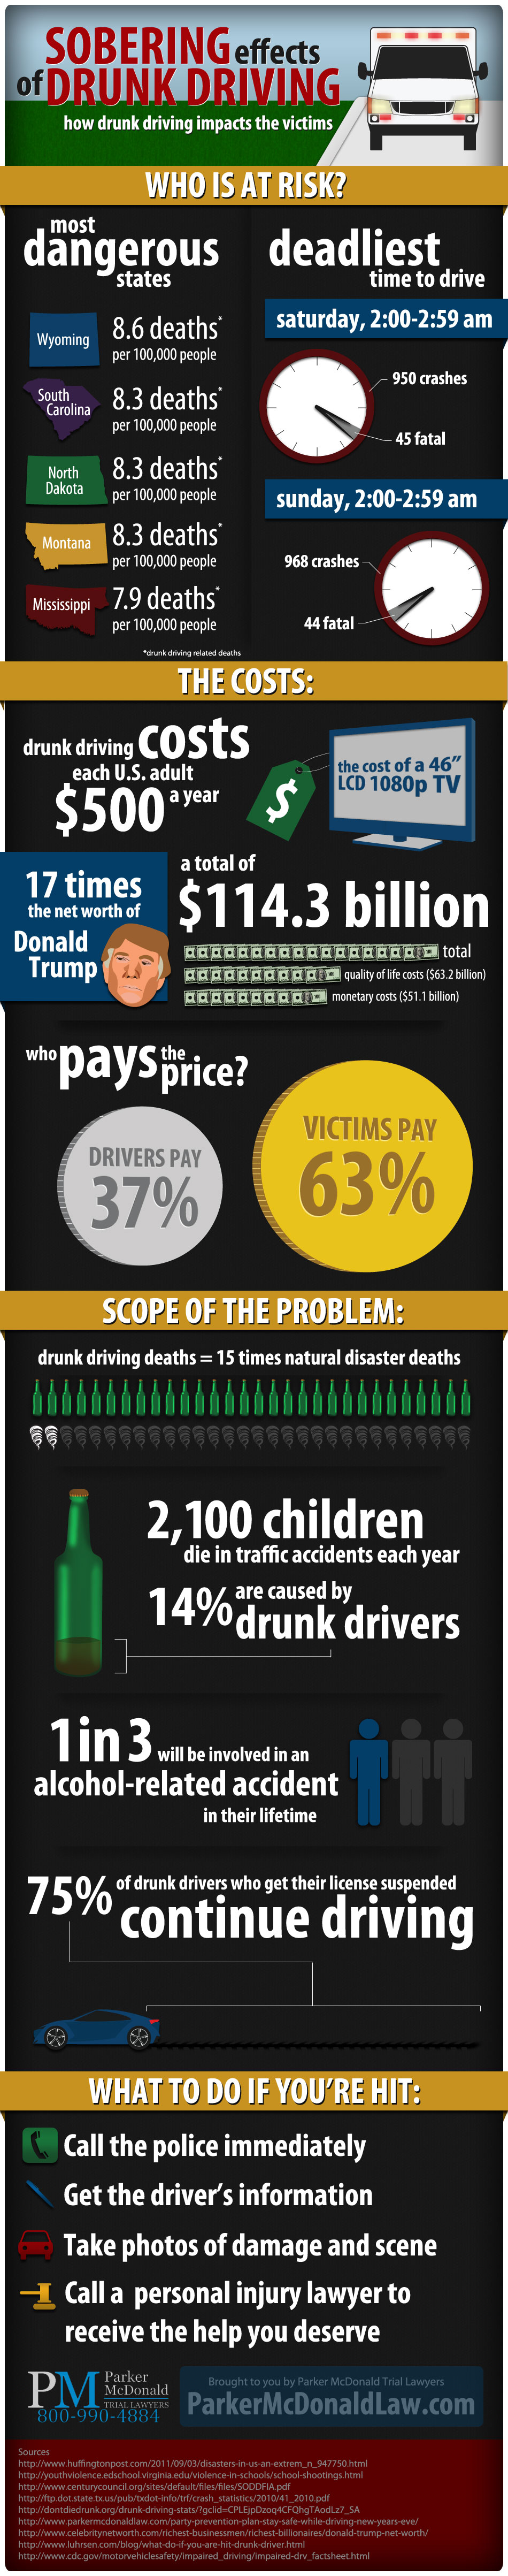 The Sobering Effects Of Drunk Driving [Infographic]